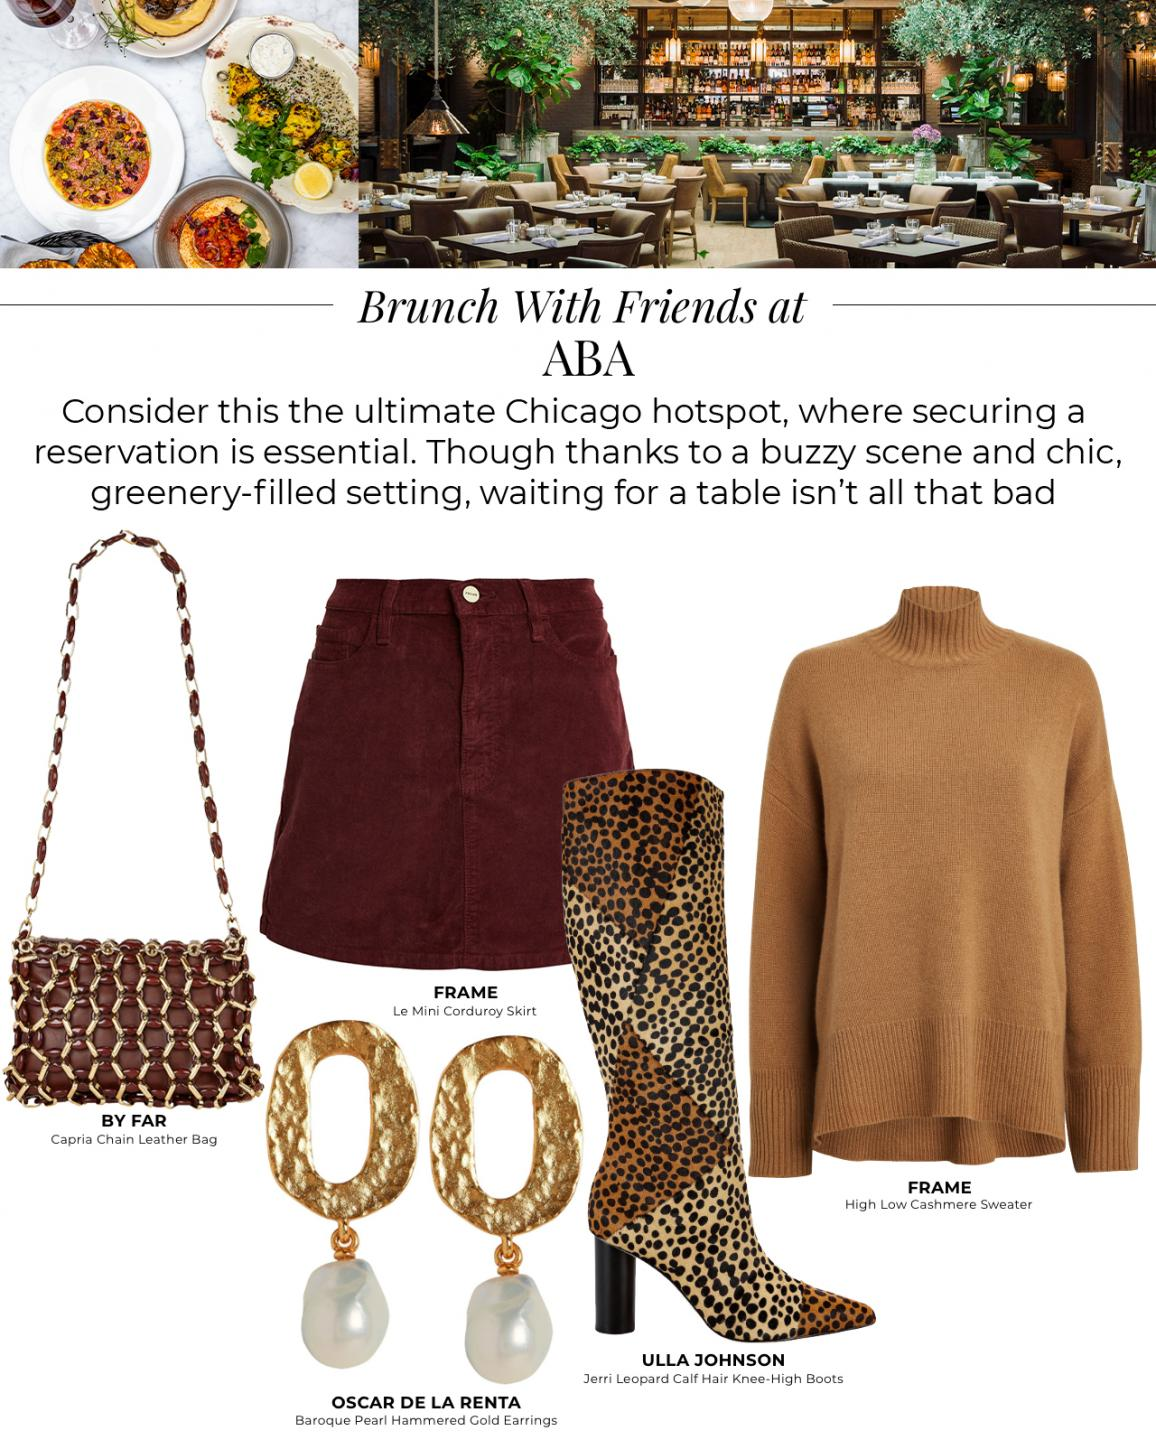 Brunch with friends at Aba. Consider this the ultimate Chicago hotpost, where securing a reservation is essential. Though thanks to the buzzy scene and chic greenery-filled setting, waiting for a table isn't all that bad. Shop By Far Capria Chain Leather Bag, Frame Le Mini Corduroy Skirt, Oscar De La Renta Baroque Pearl Hammered Gold Earrings, Ull Johnson Jerri Leopard Calg Hair Knee-high boots, and Frame High Low Cashmere Sweater